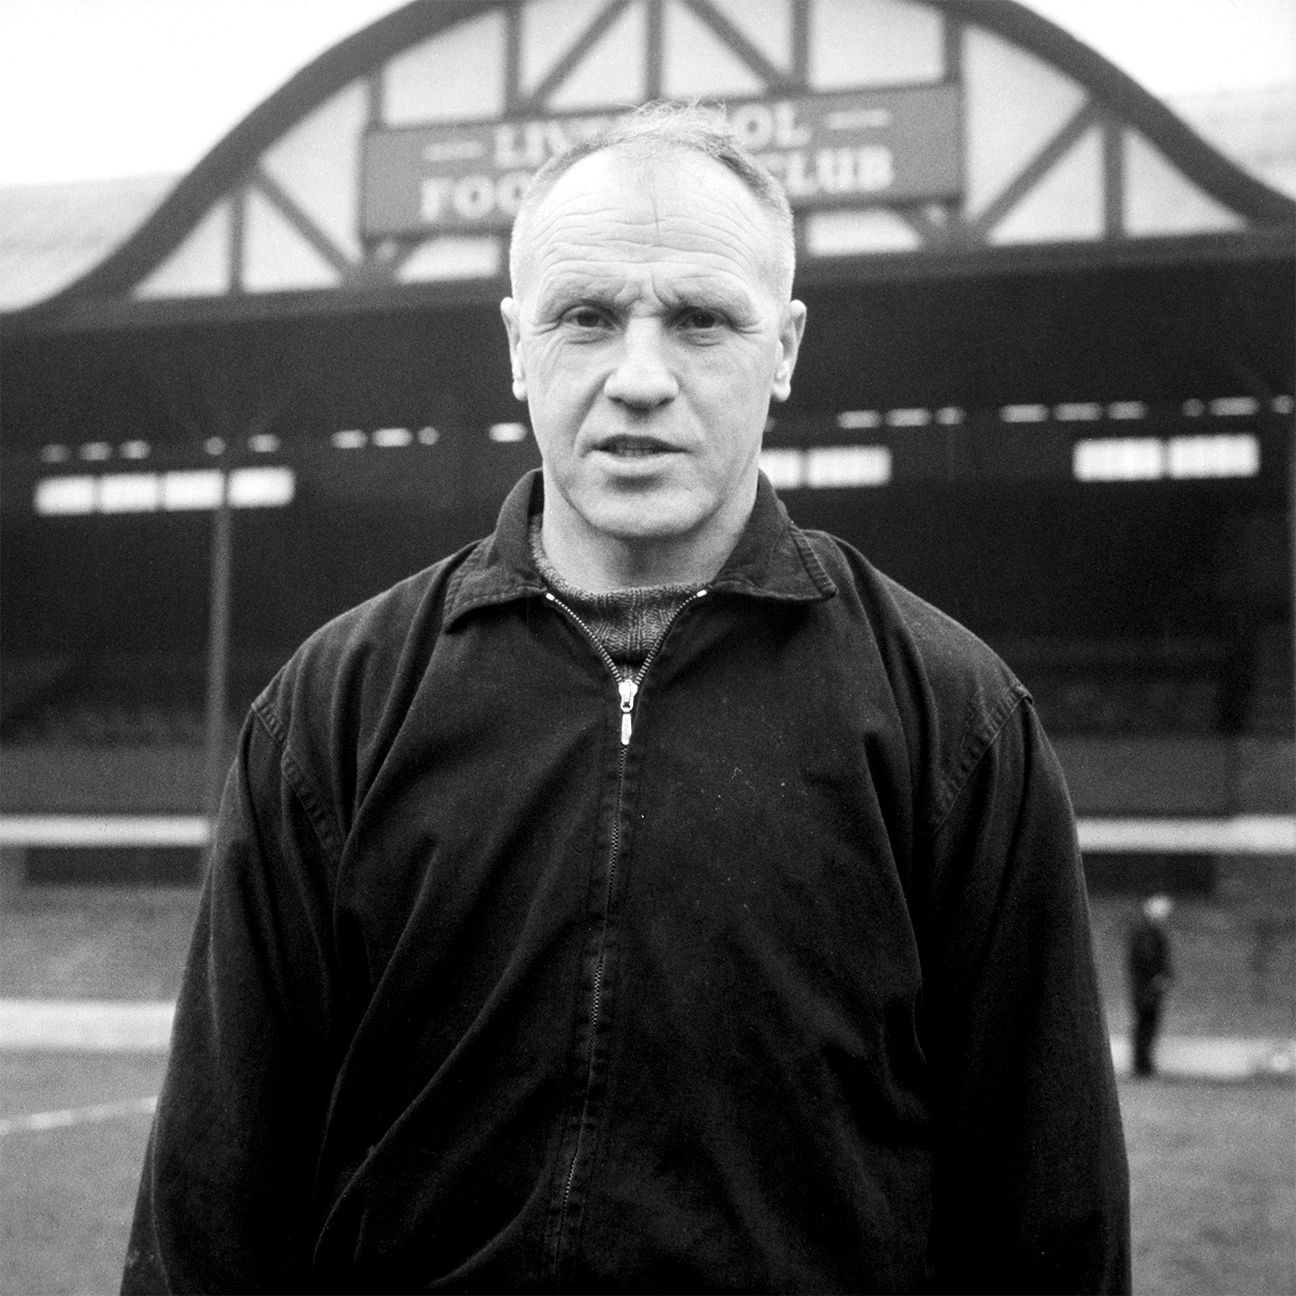 The Bill Shankly hotel will include a museum dedicated to the former Liverpool manager.